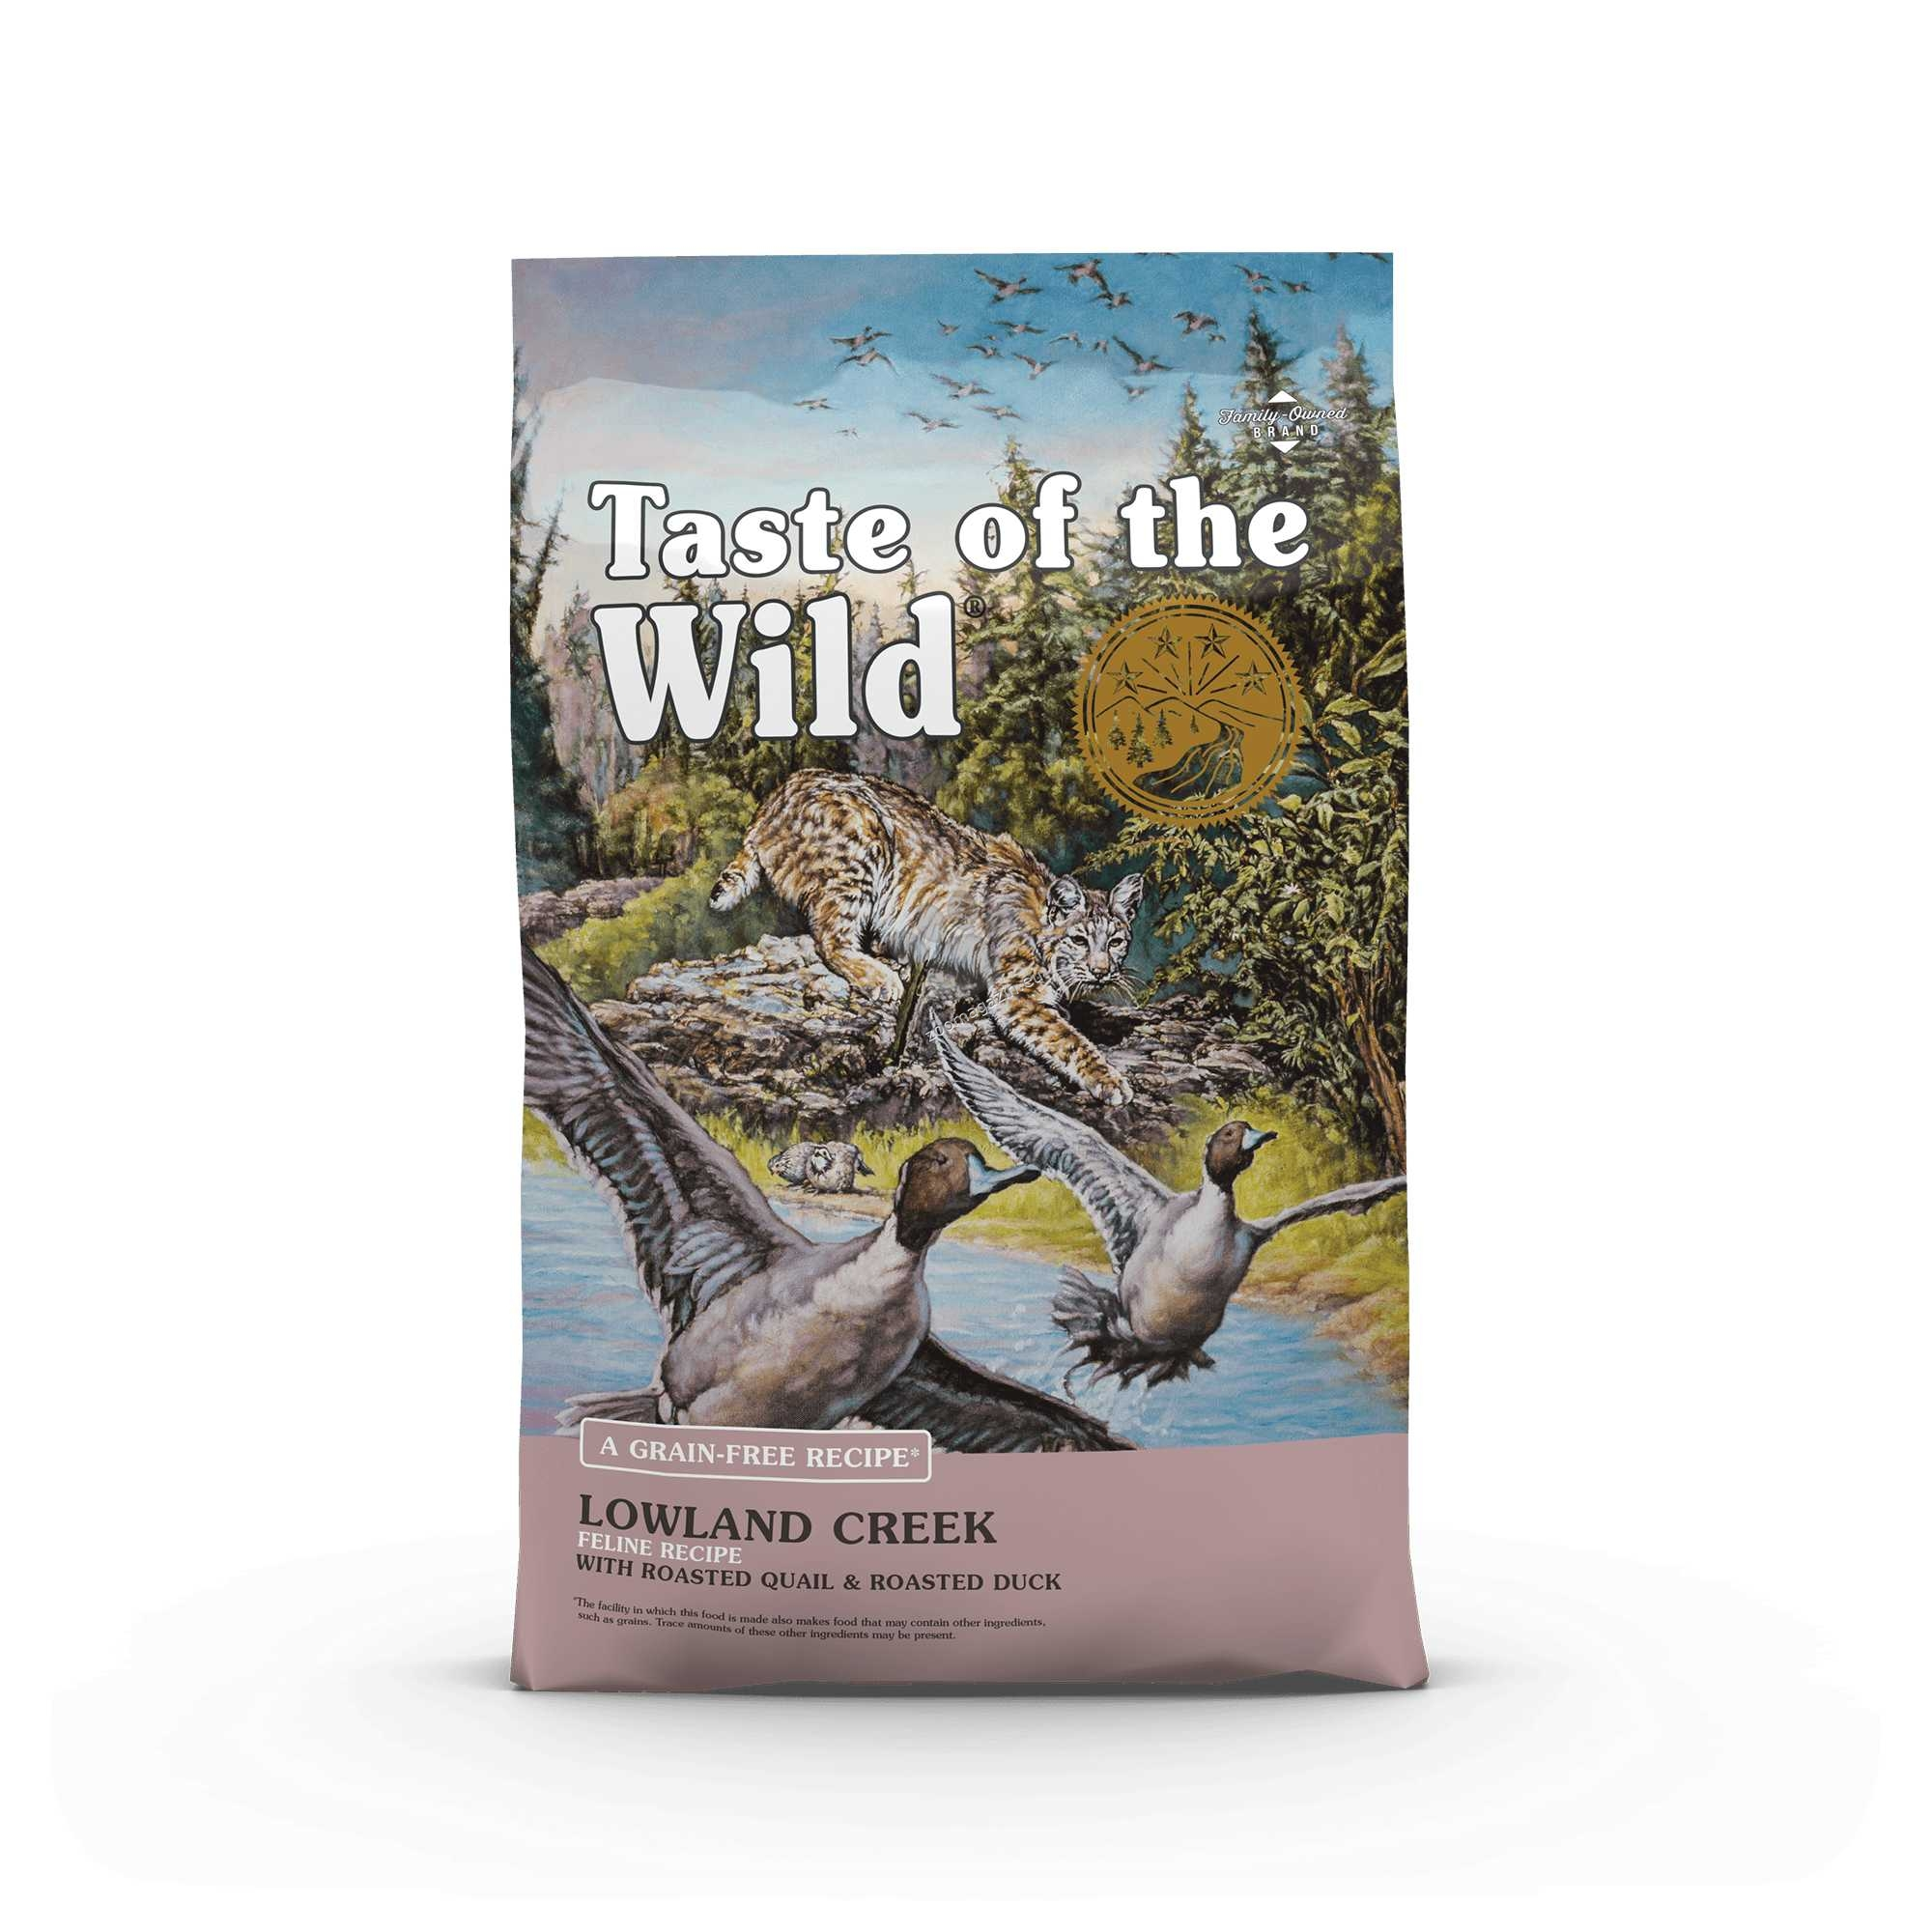 Taste of the Wild Lowland Creek Feline Recipe with Roasted Quail & Roasted Duck - котешка храна с пернат дивеч 6.6 кг.